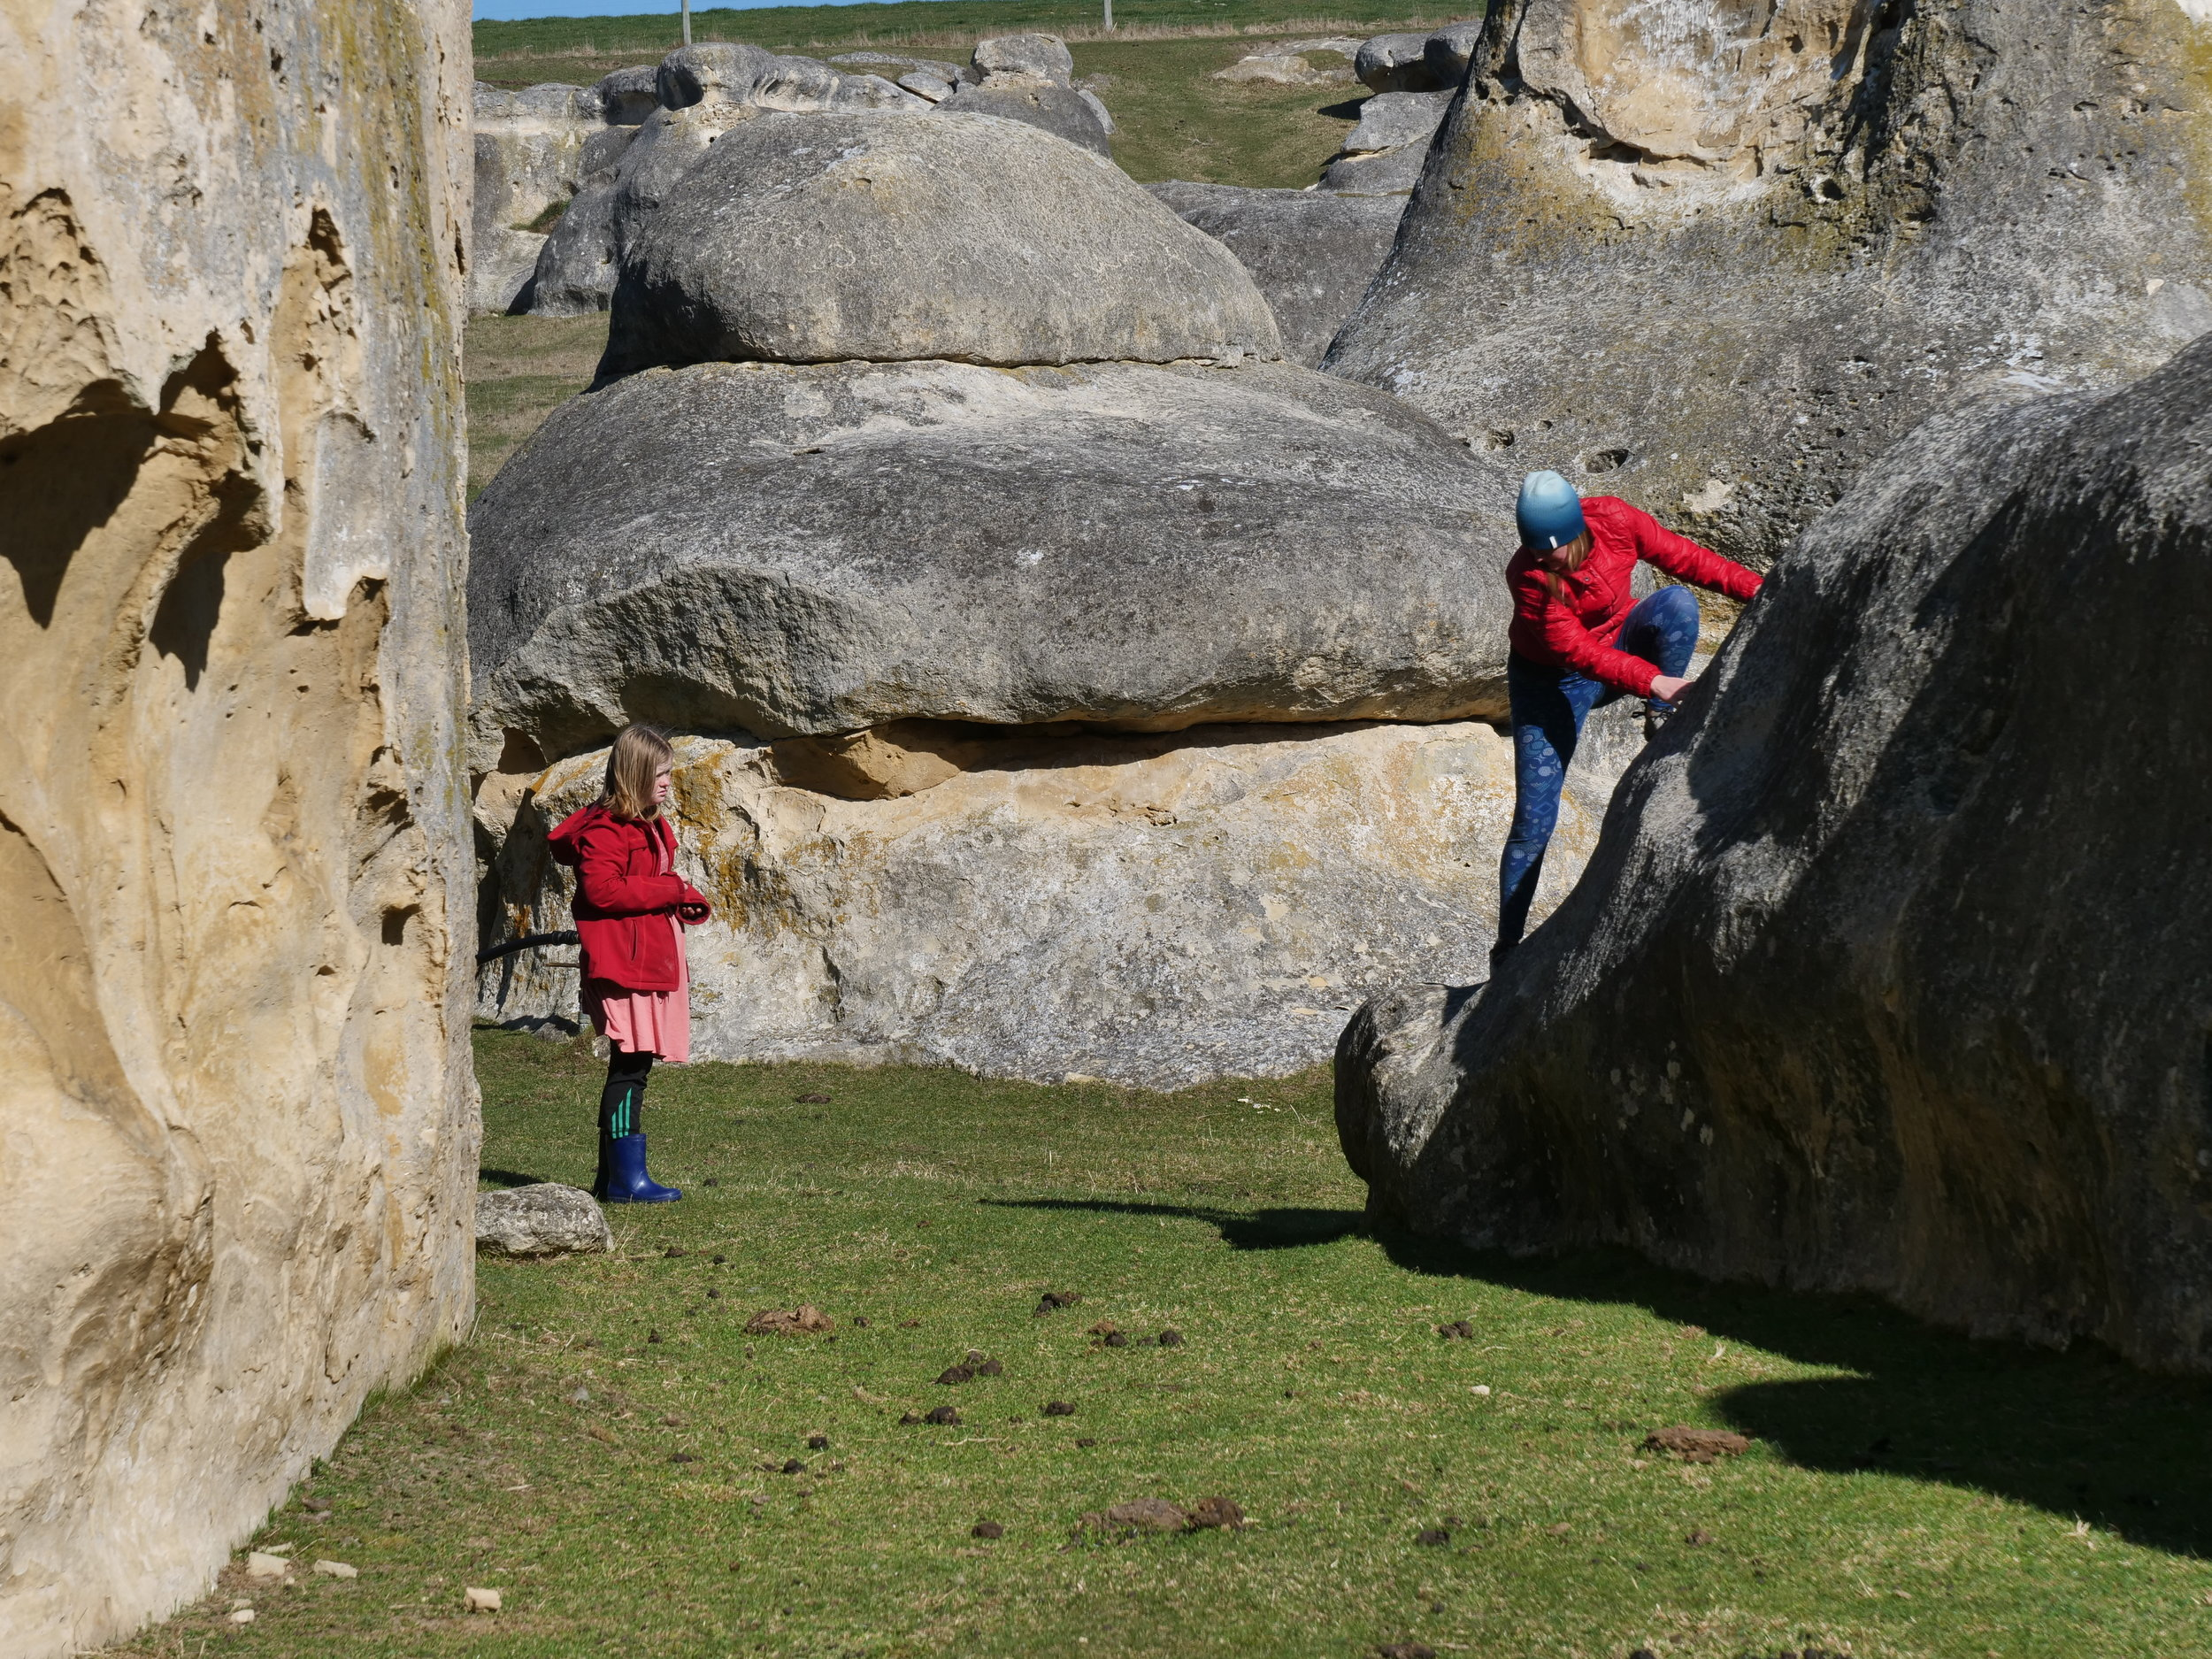 Bouldering in Elephant Rocks